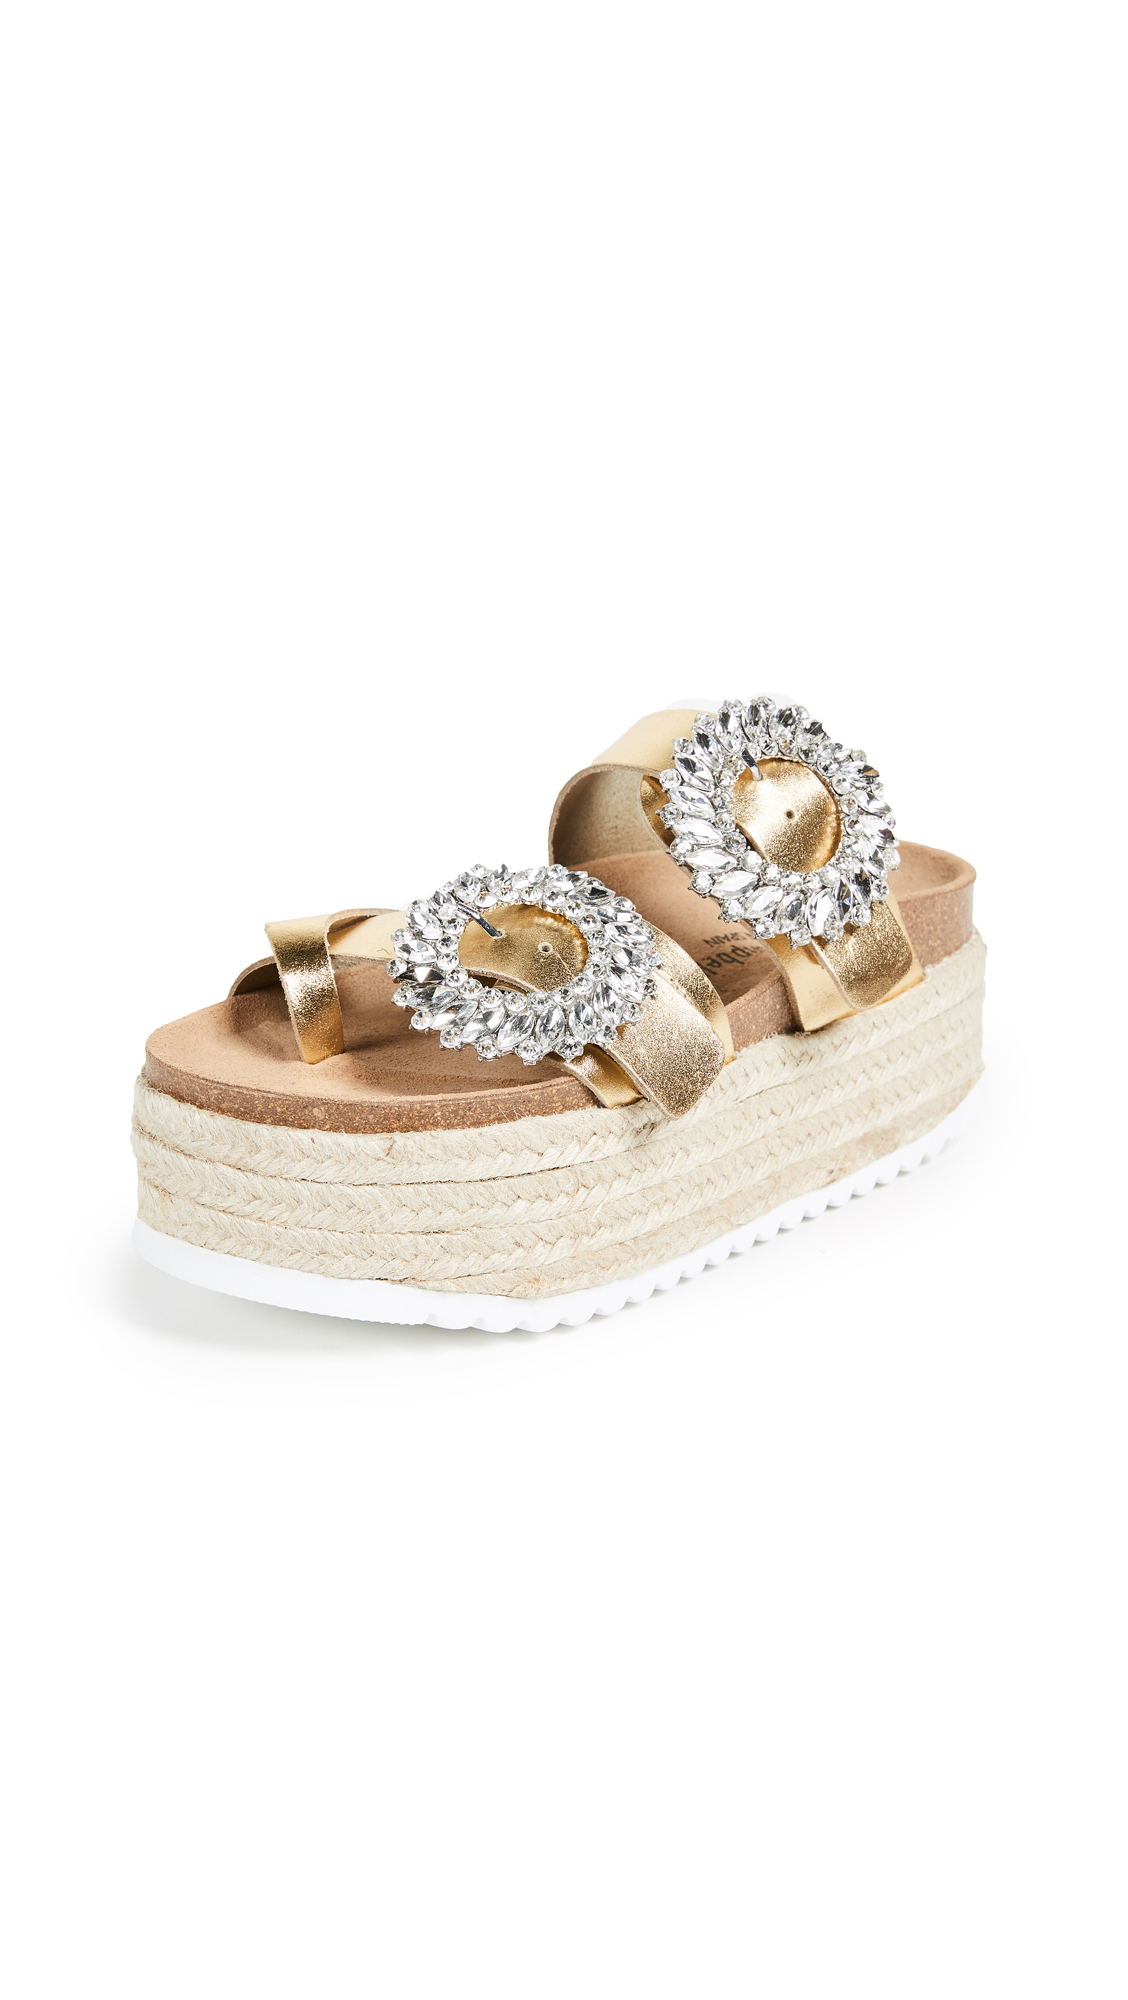 Jeffrey Campbell Bora Double Strap Slides - Gold/Silver